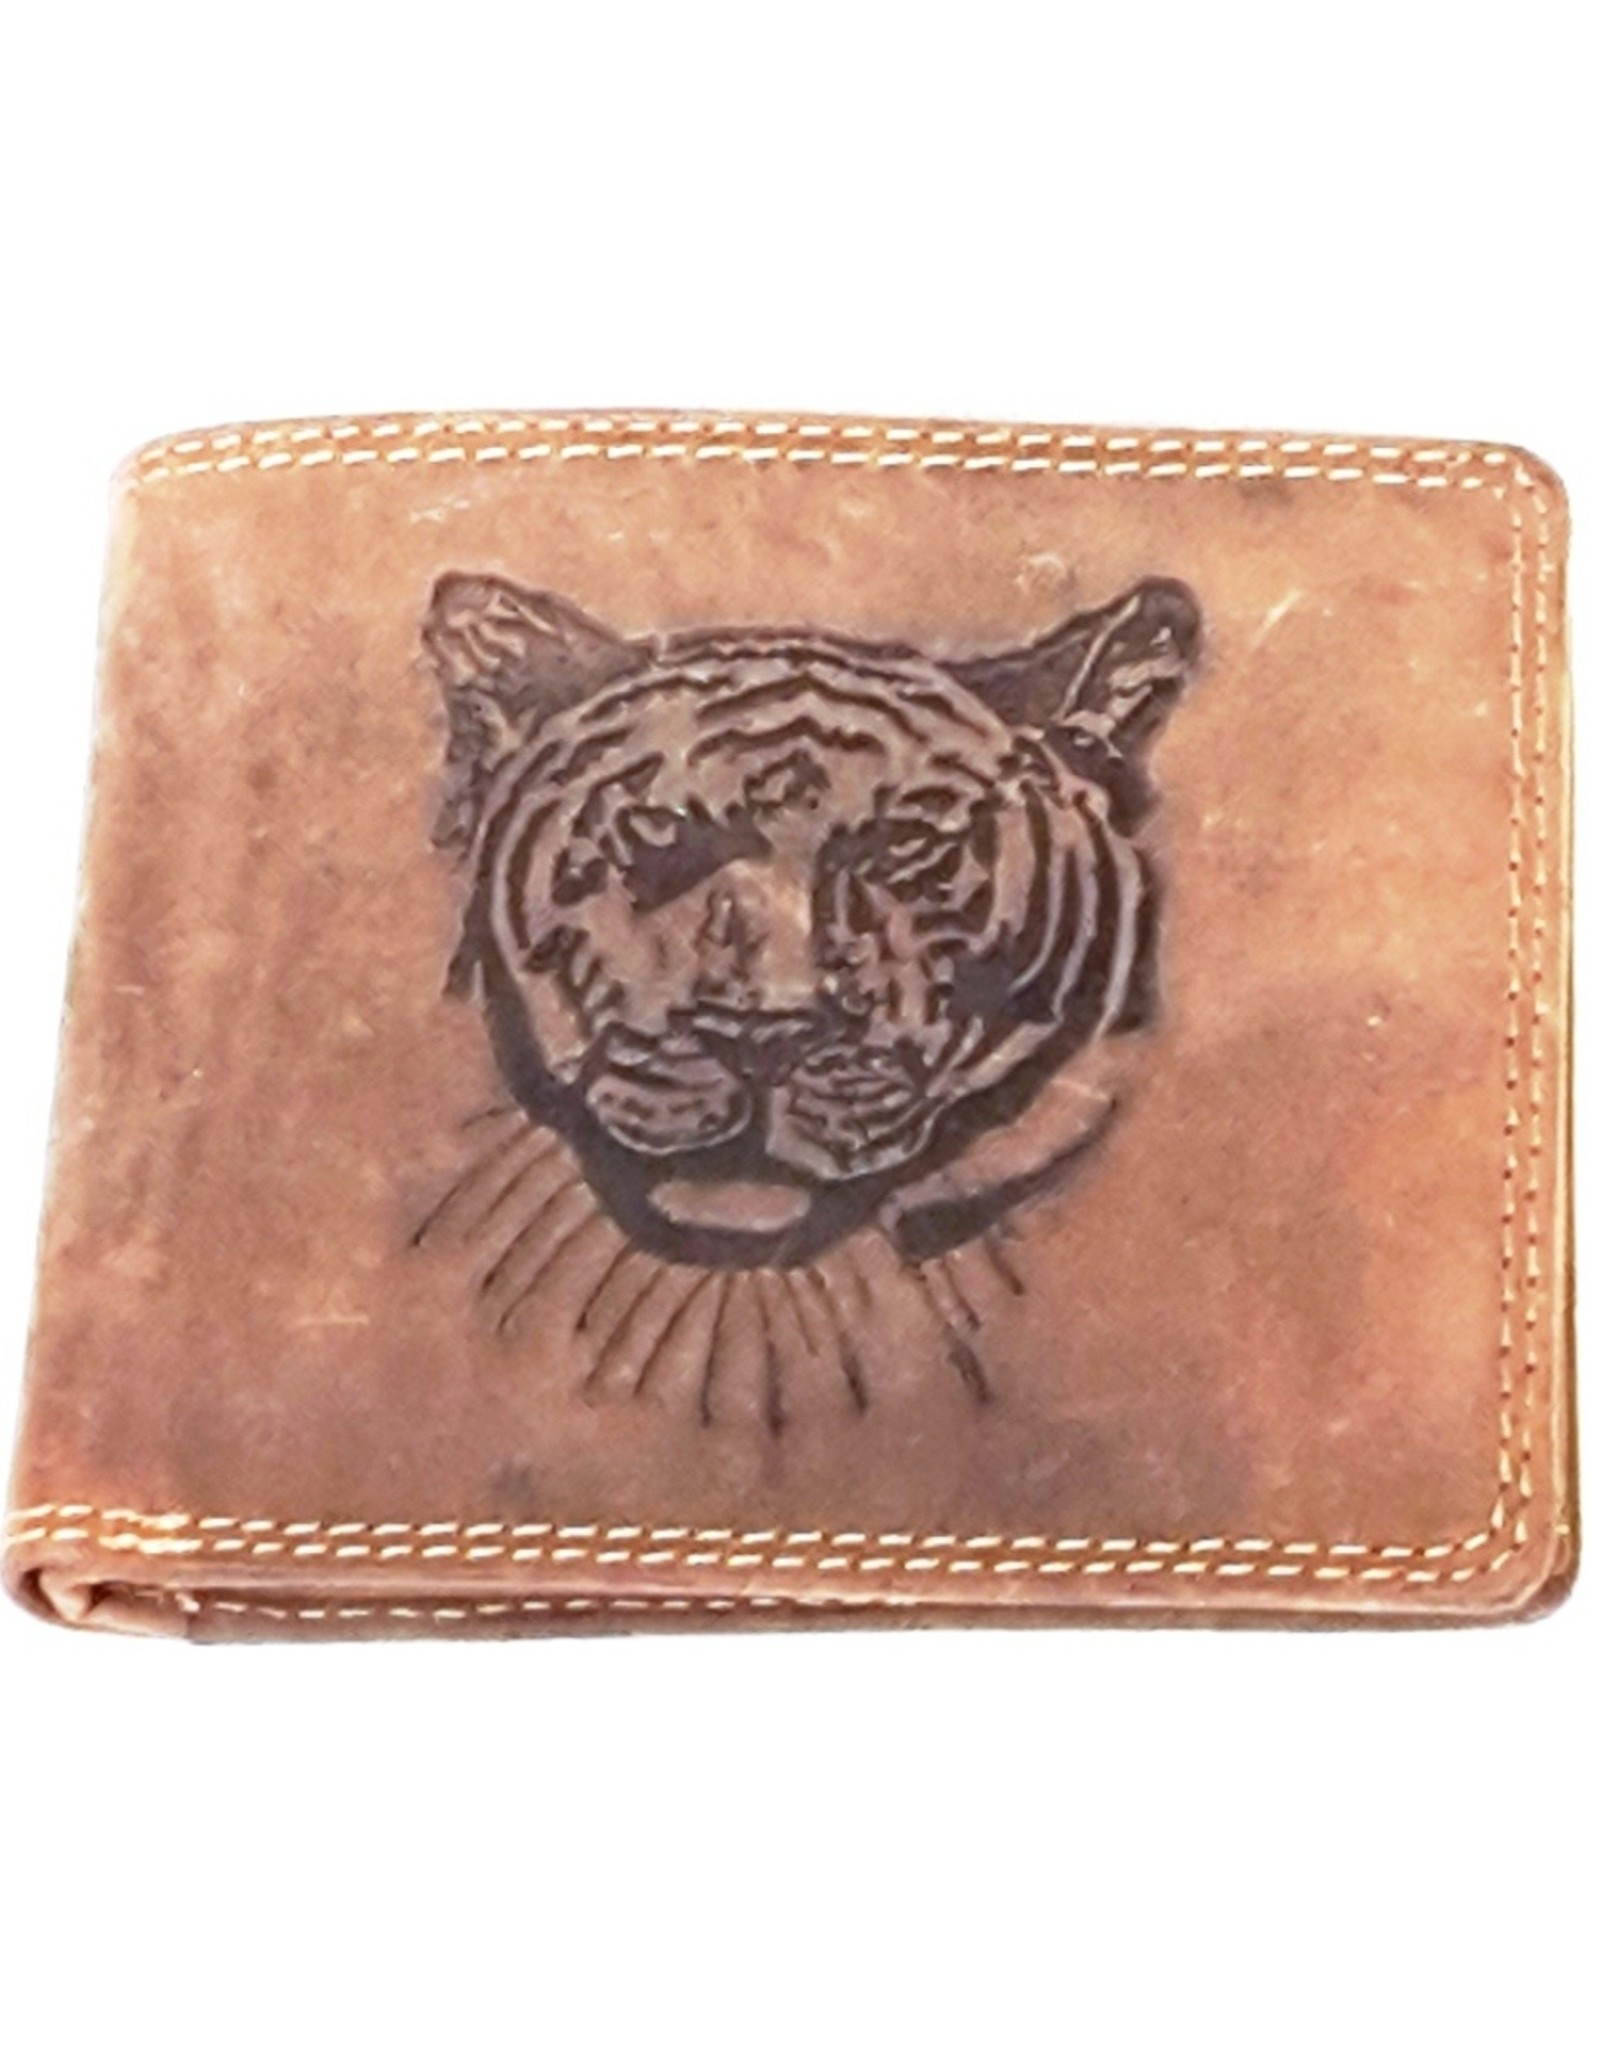 Hütmann Leather Wallets -  Leather wallet with embossed Tiger head horizontal